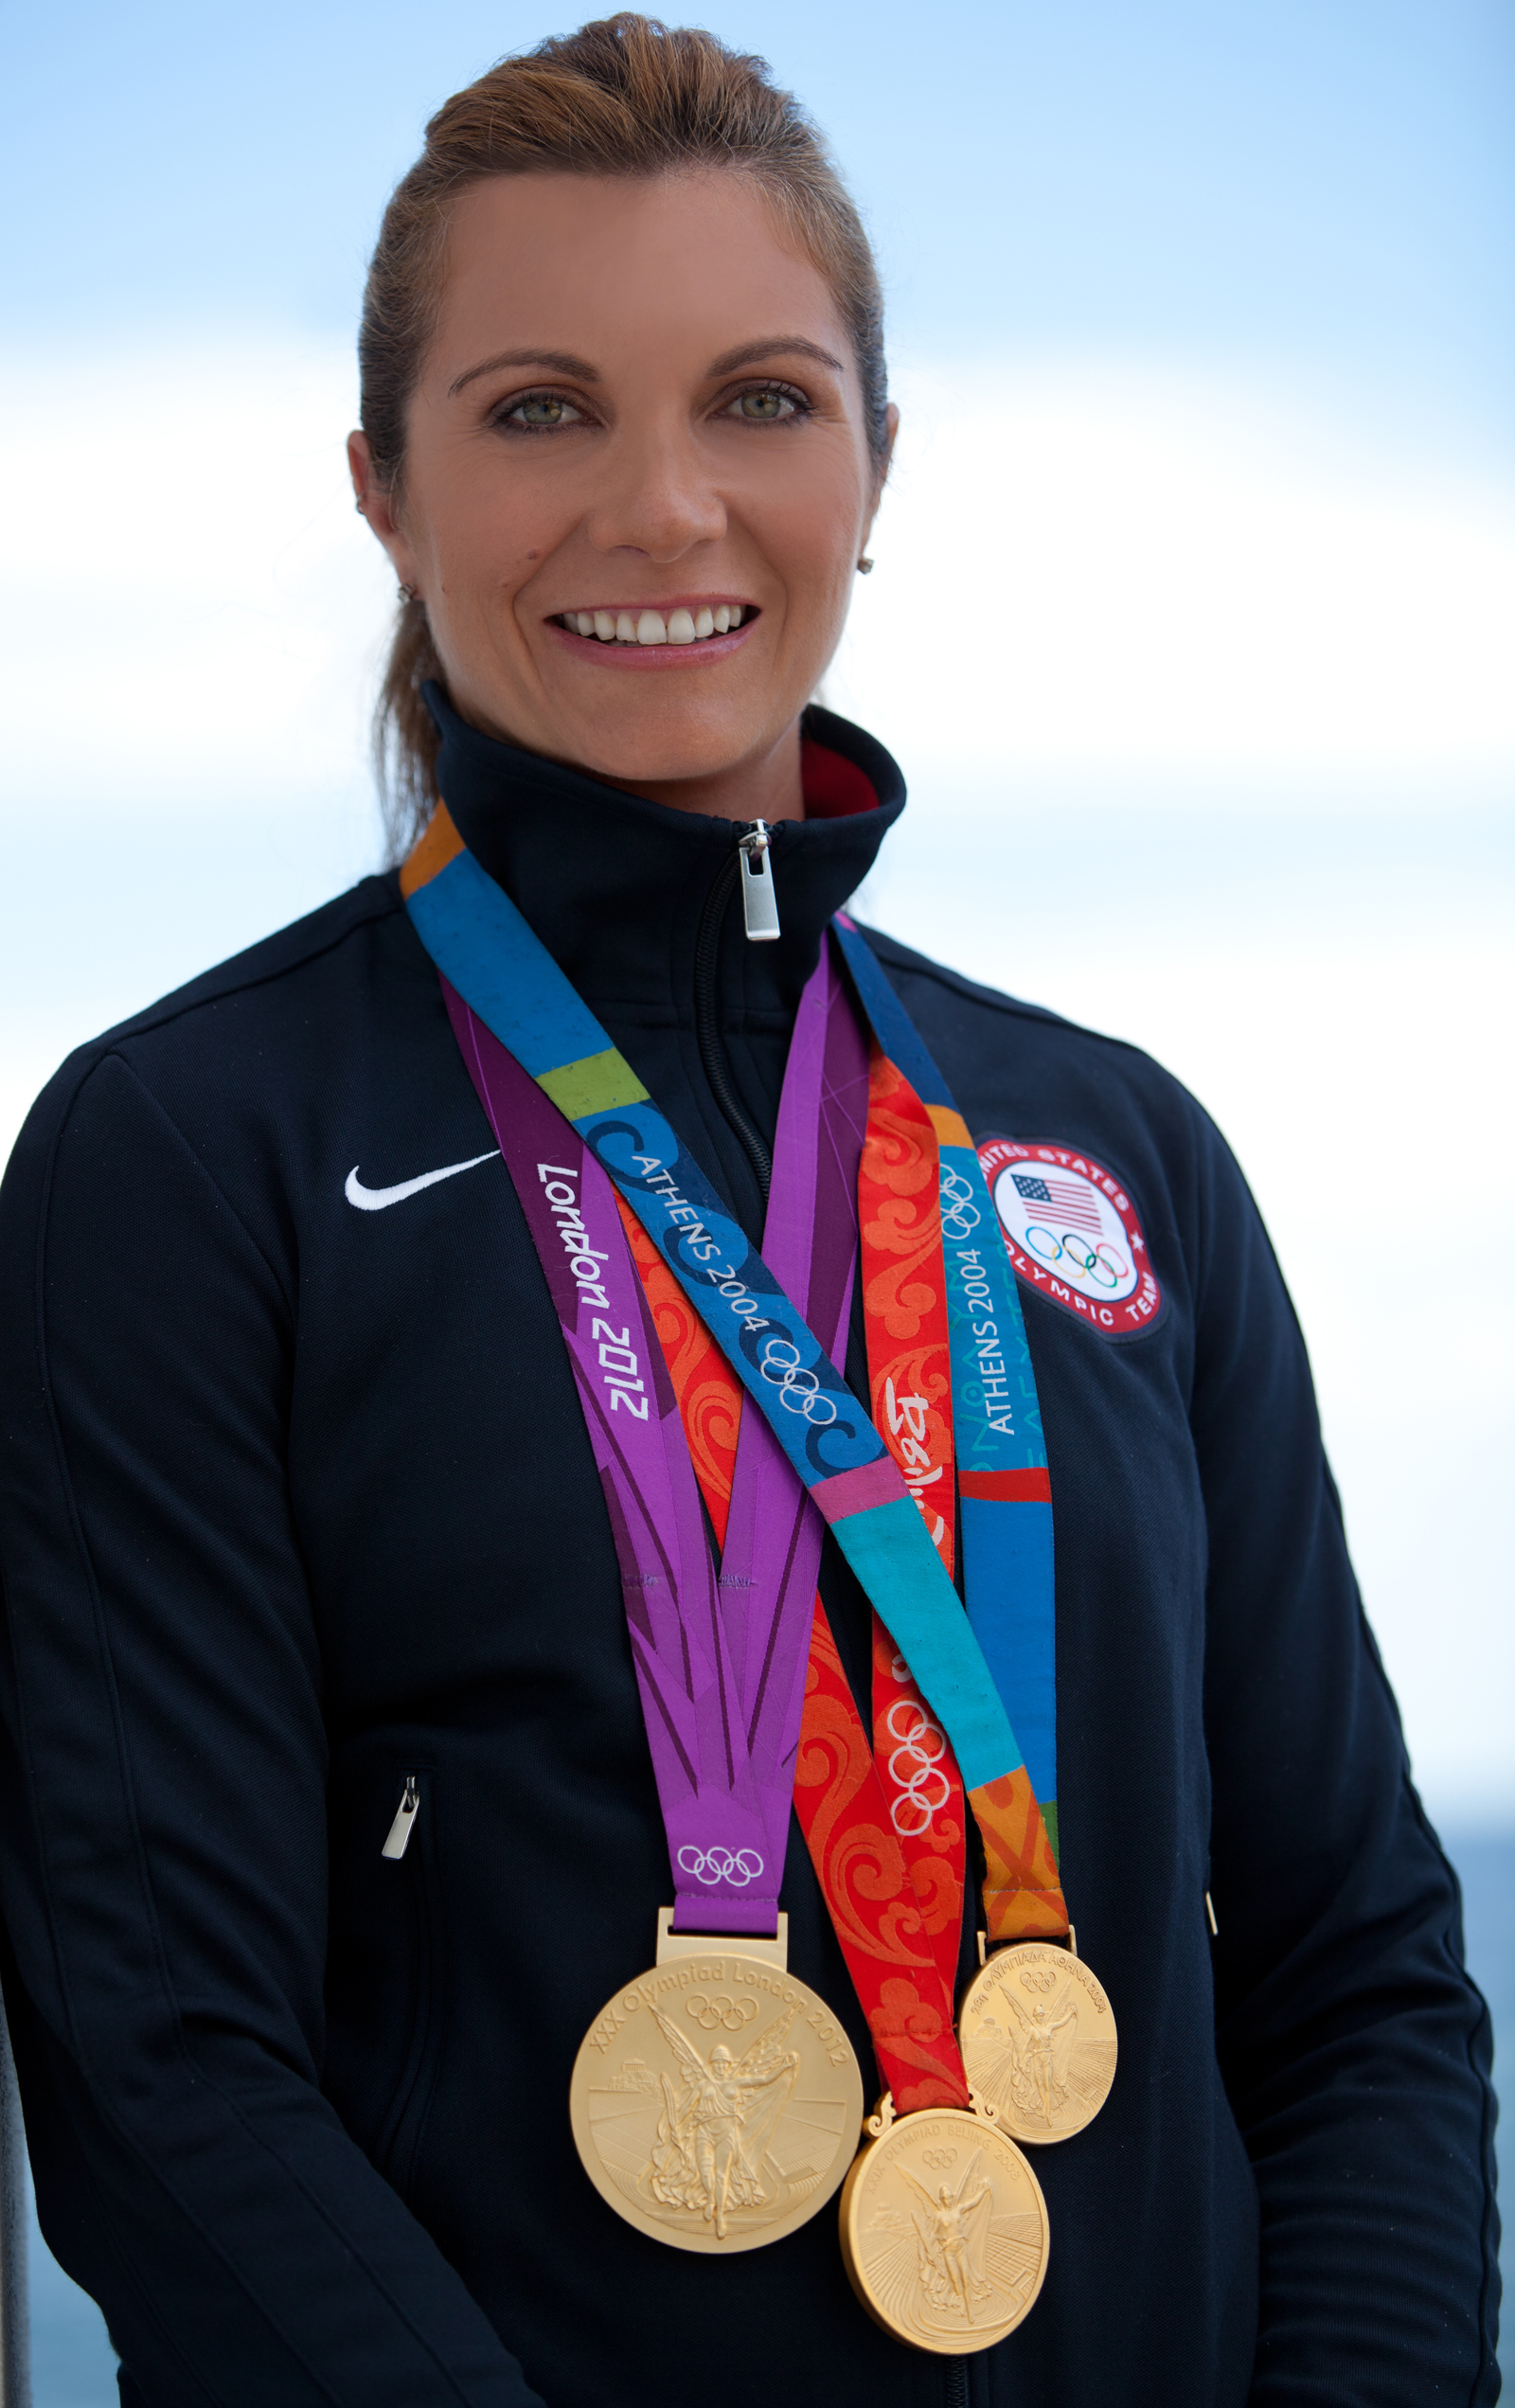 VCA Spokeswoman Misty May-Treanor with Olympic medals